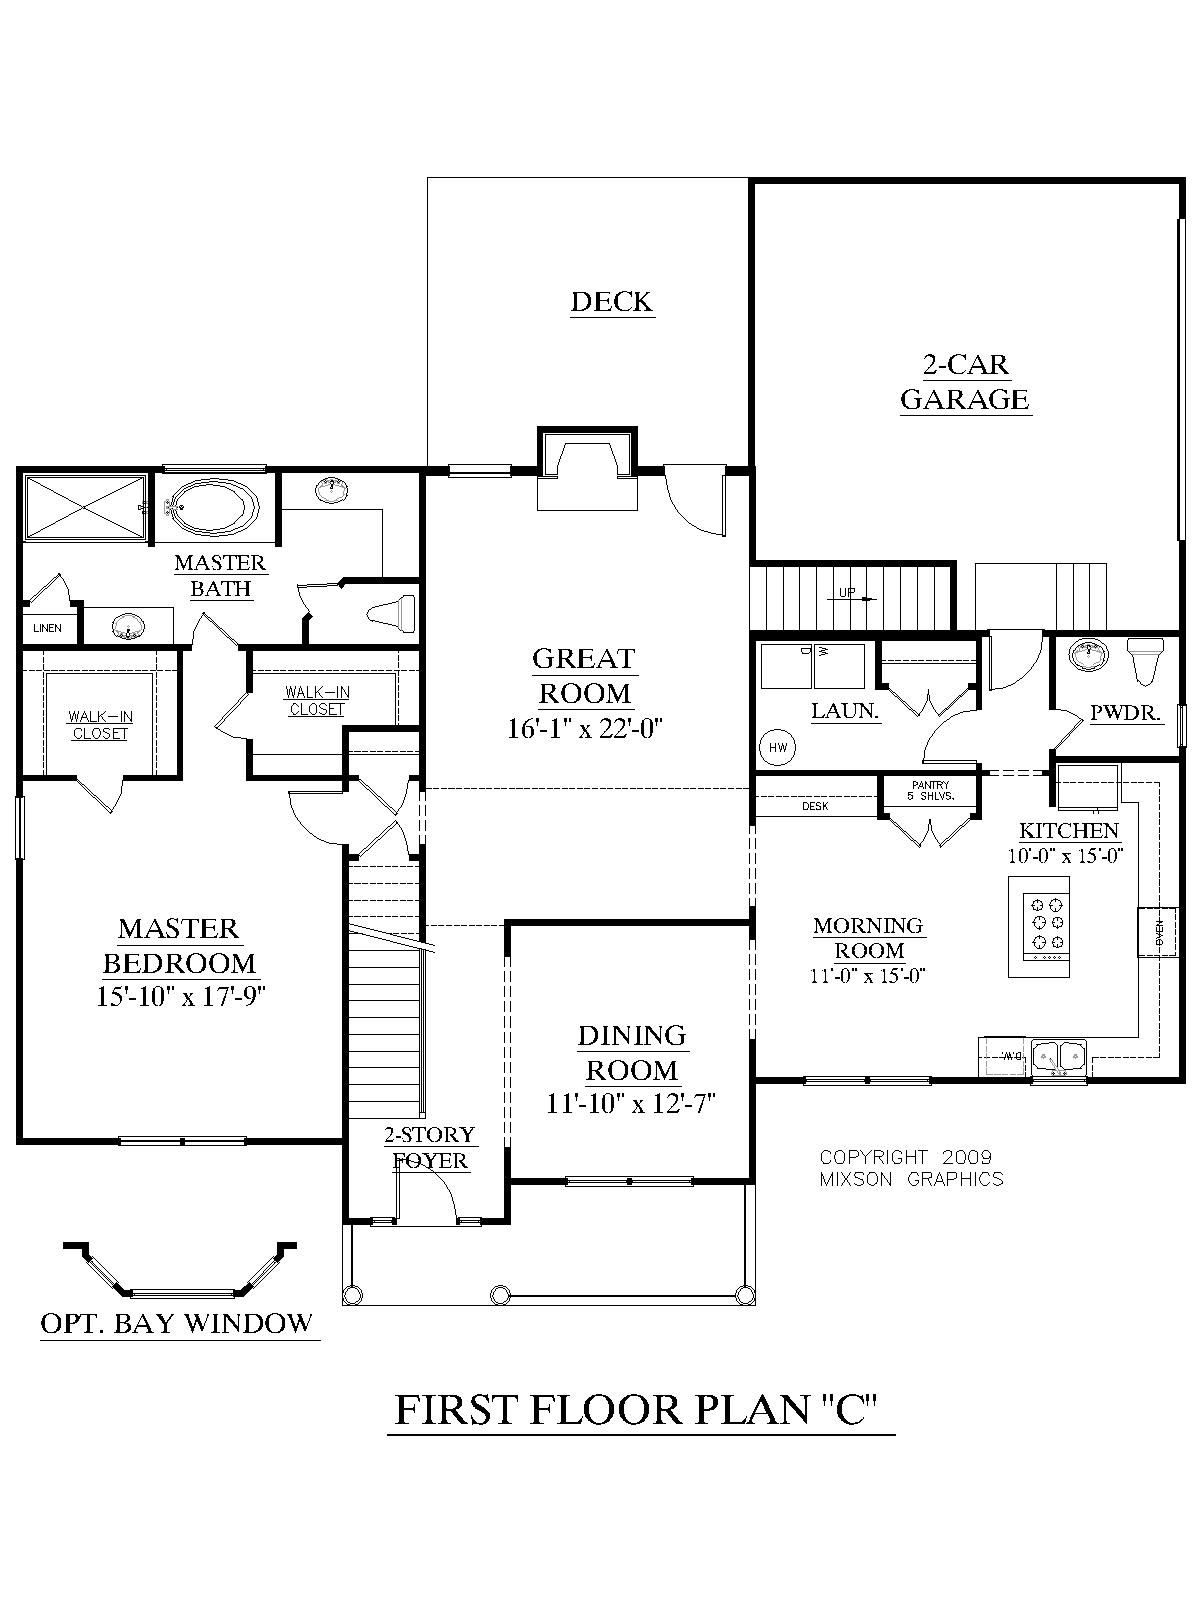 House plan 2675 c longcreek c first floor traditional 2 for 4 bedroom floor plans with bonus room